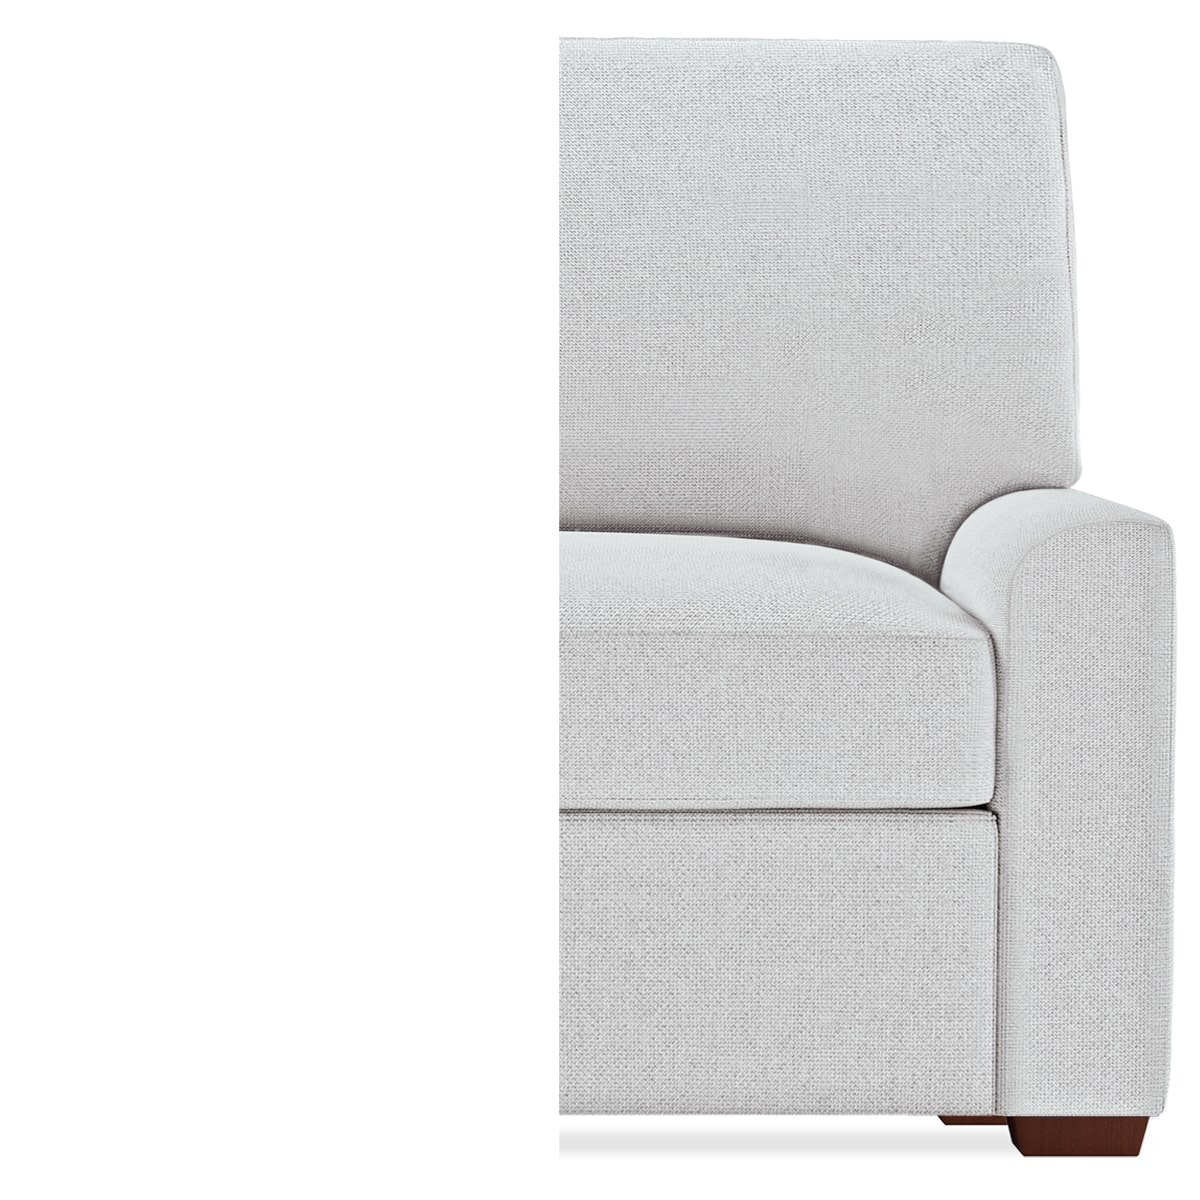 American Leather Klein Comfort Sleeper--clean, simple, stylish